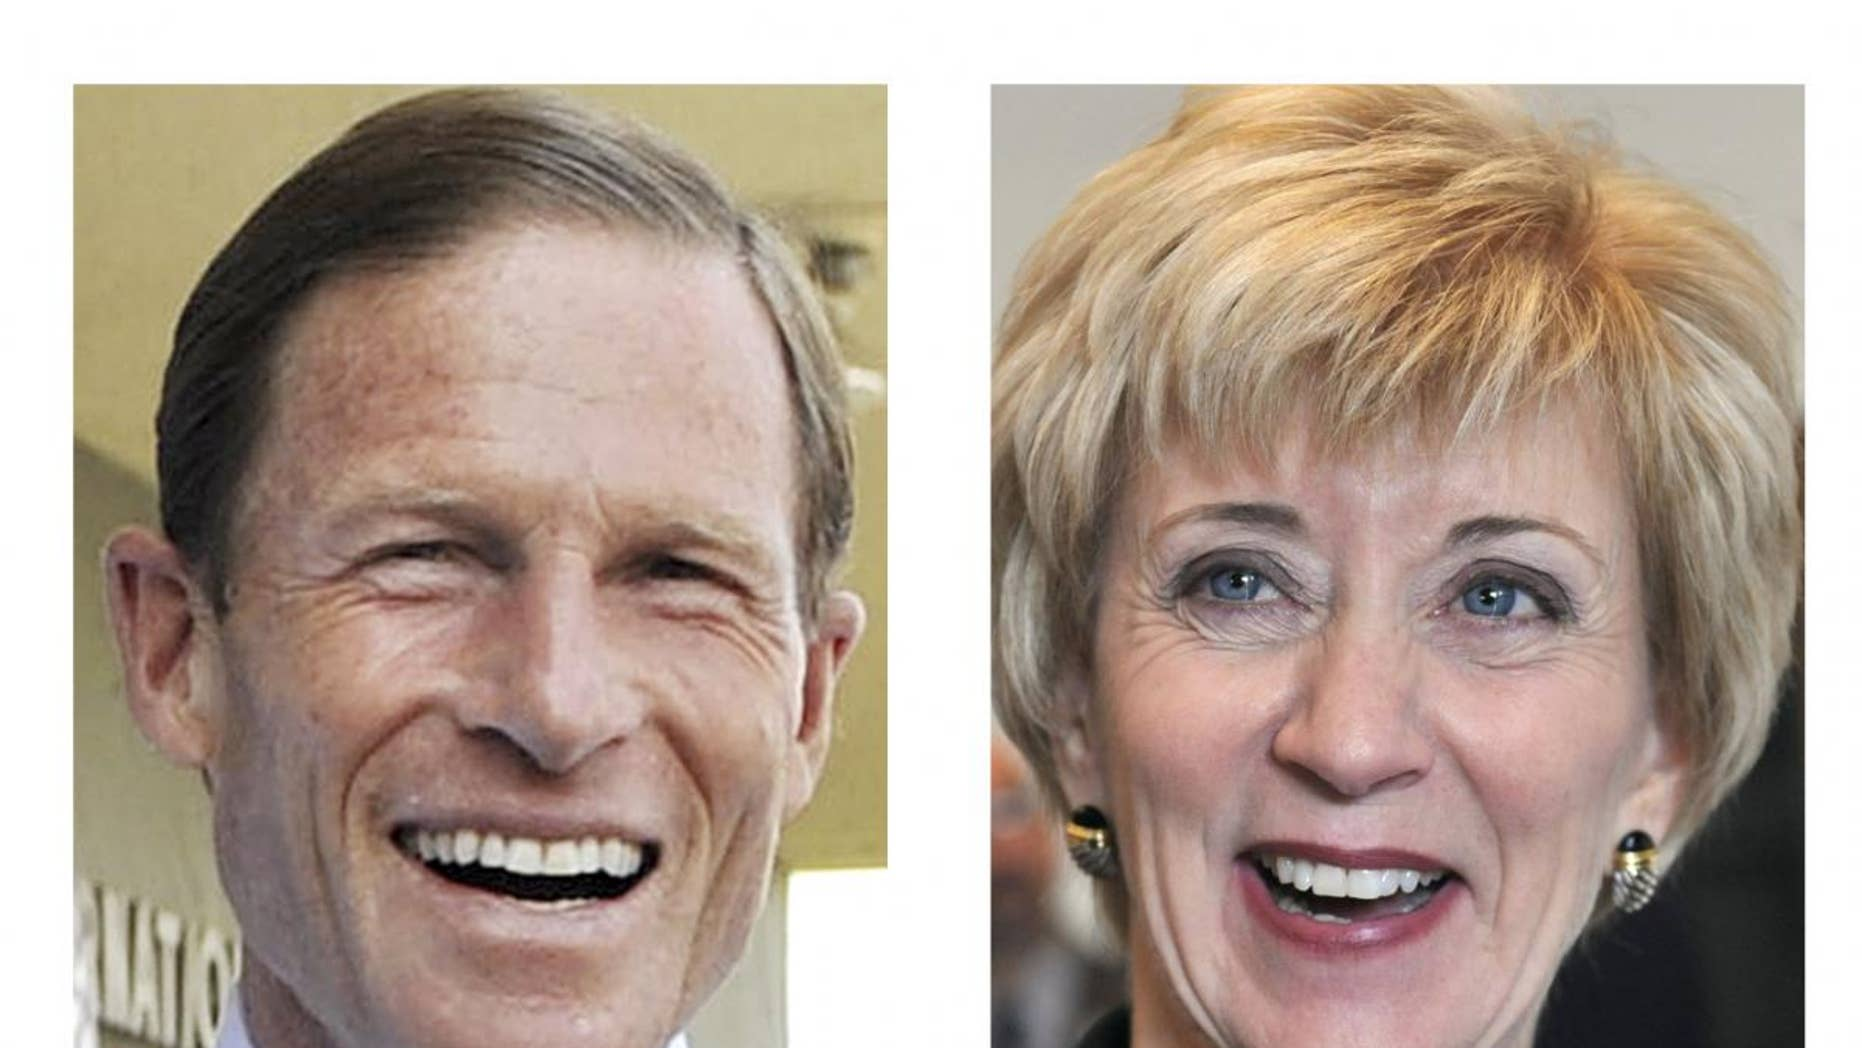 This combination of 2010 photos shows Democrat Richard Blumenthal, left, and Republican Linda McMahon, right, candidates in the Nov. 2, general election in Connecticut for the U.S. Senate seat being vacated by Christopher Dodd. (AP Photo/Jessica Hill)